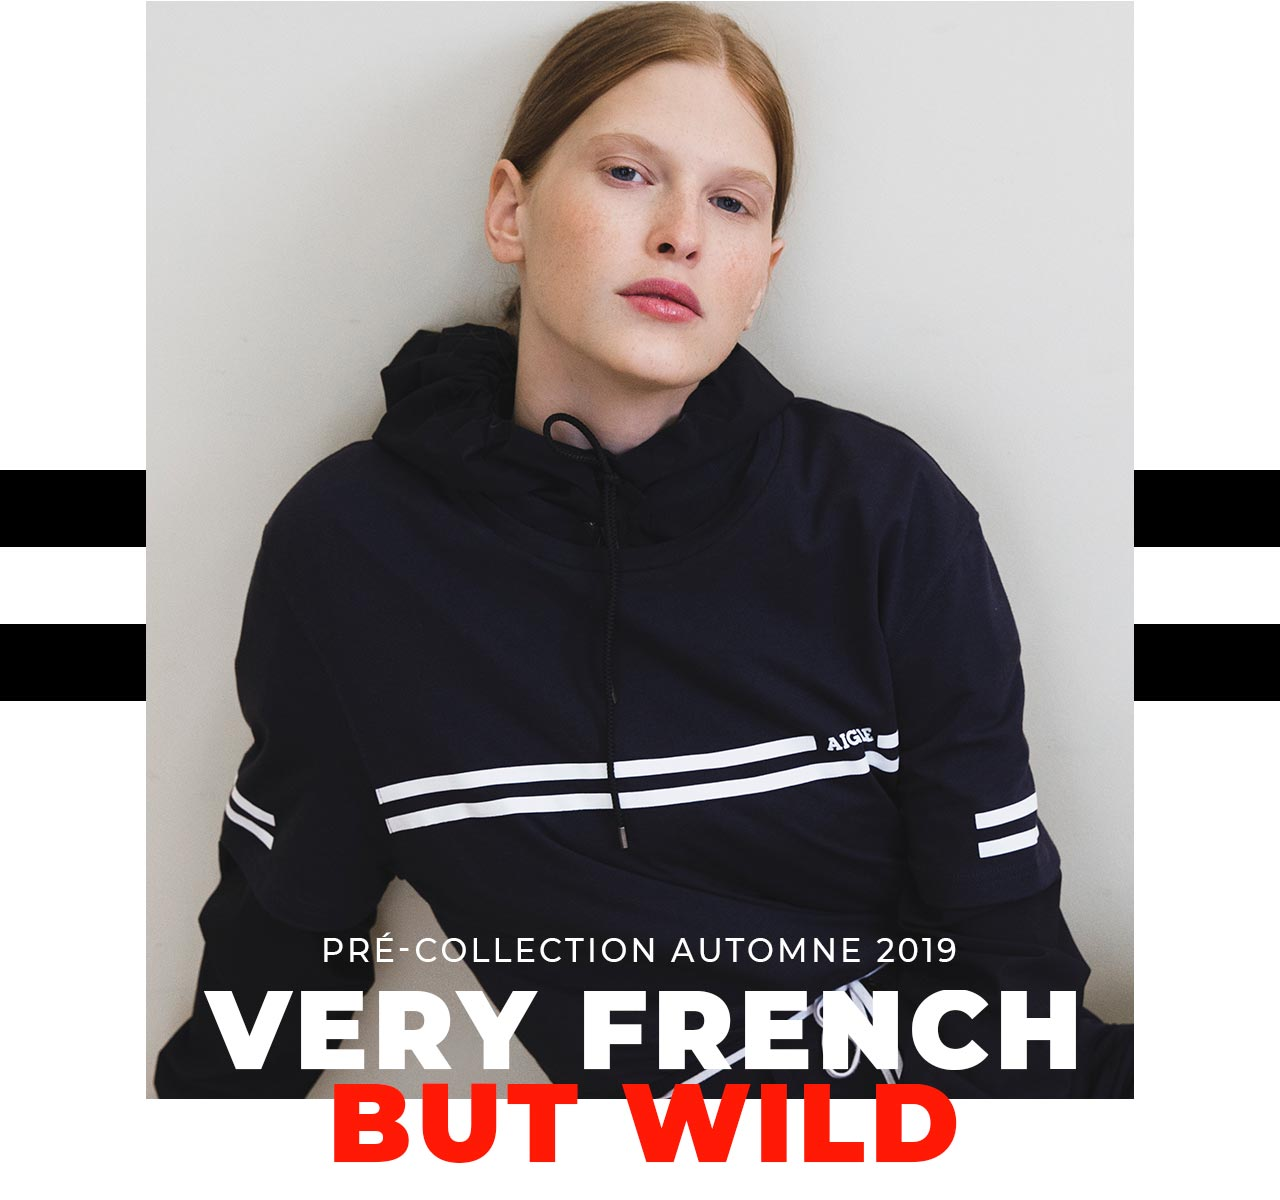 Very French but wild